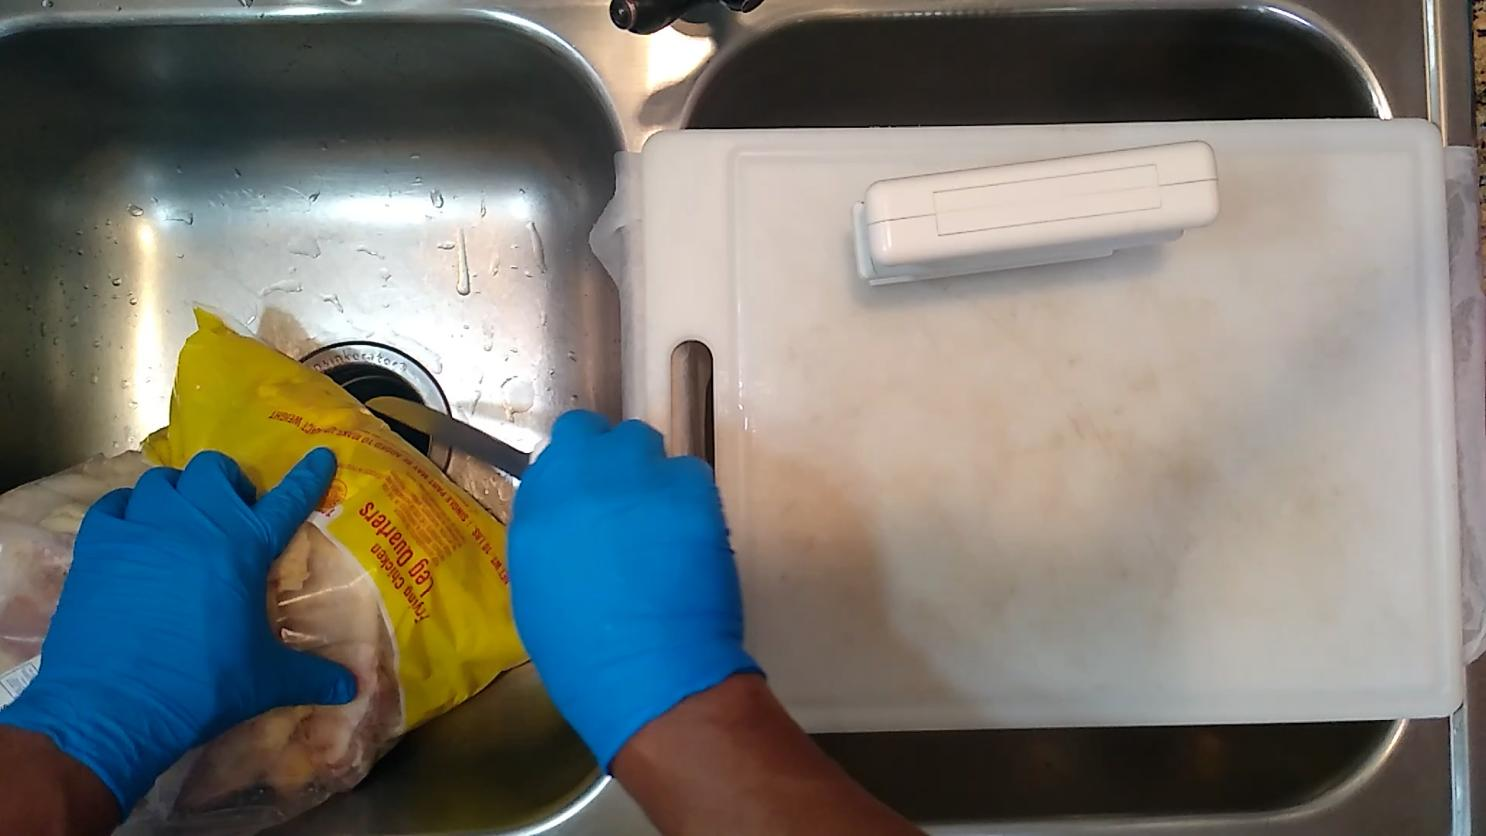 10lb bag of chicken quarters cutting the bottom to drain blood and bits